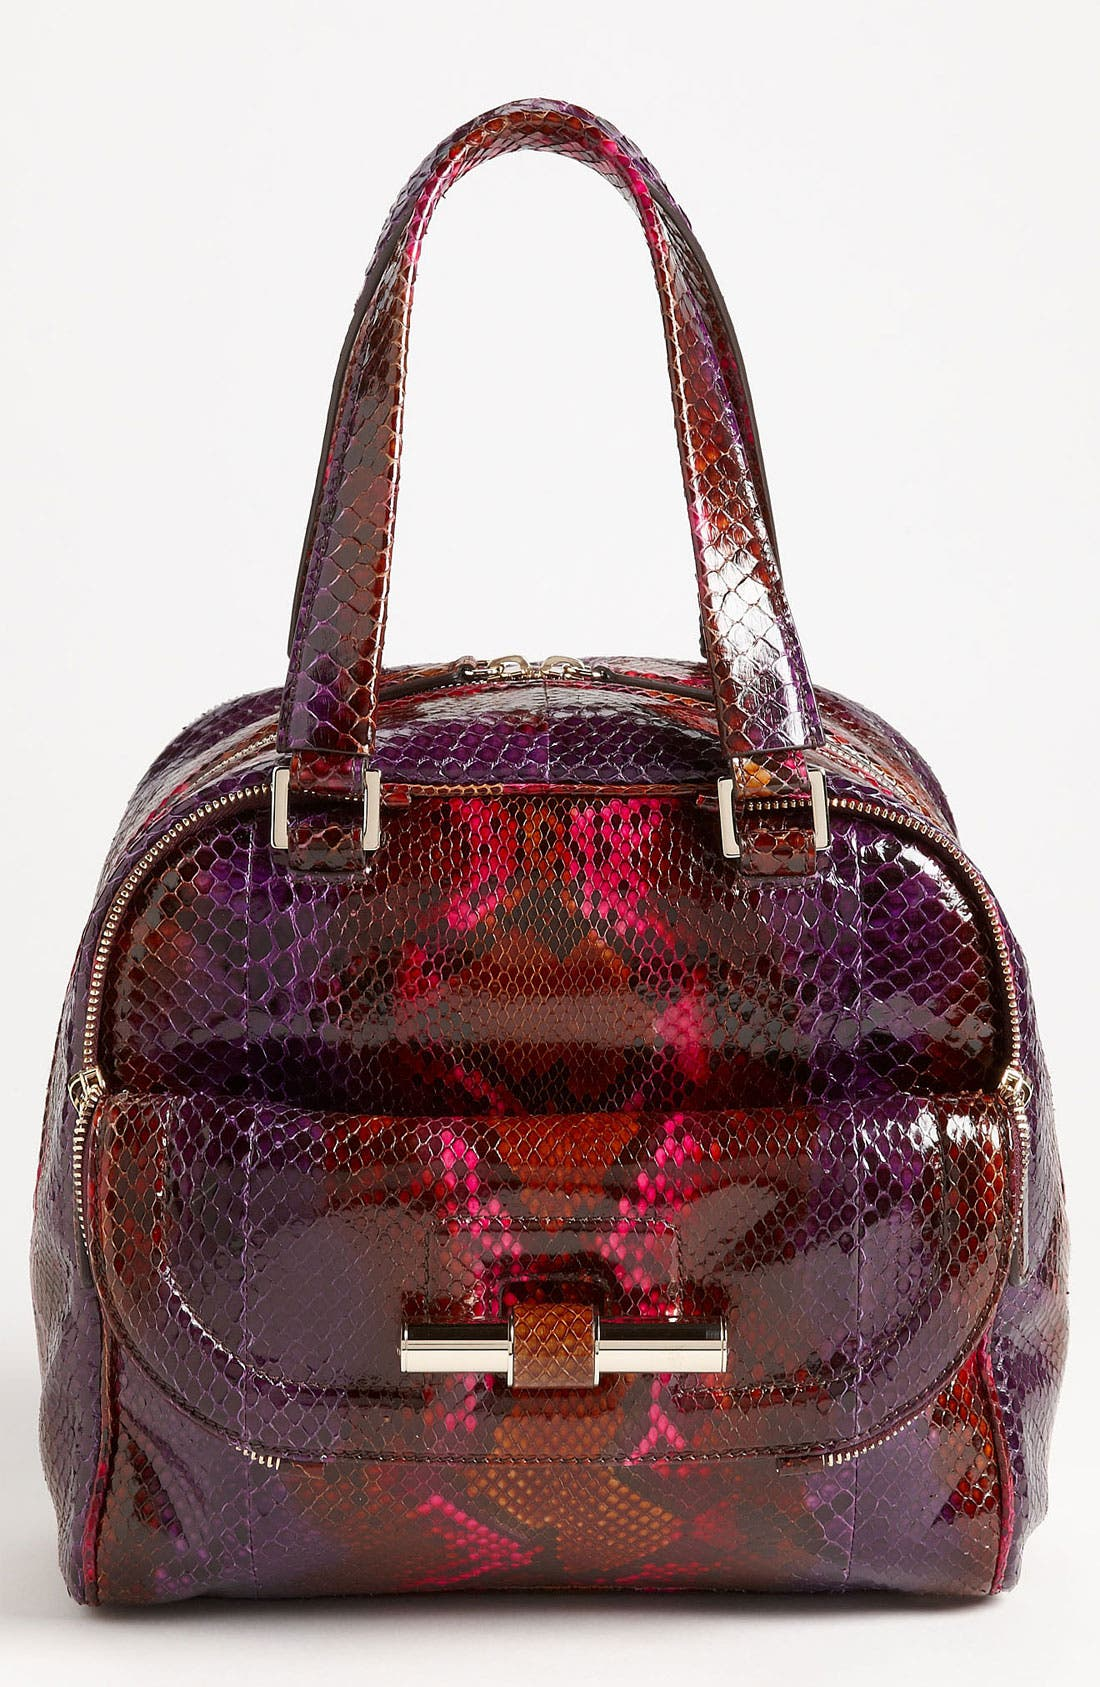 JIMMY CHOO 'Justine - Small' Genuine Python Satchel, Main, color, 500